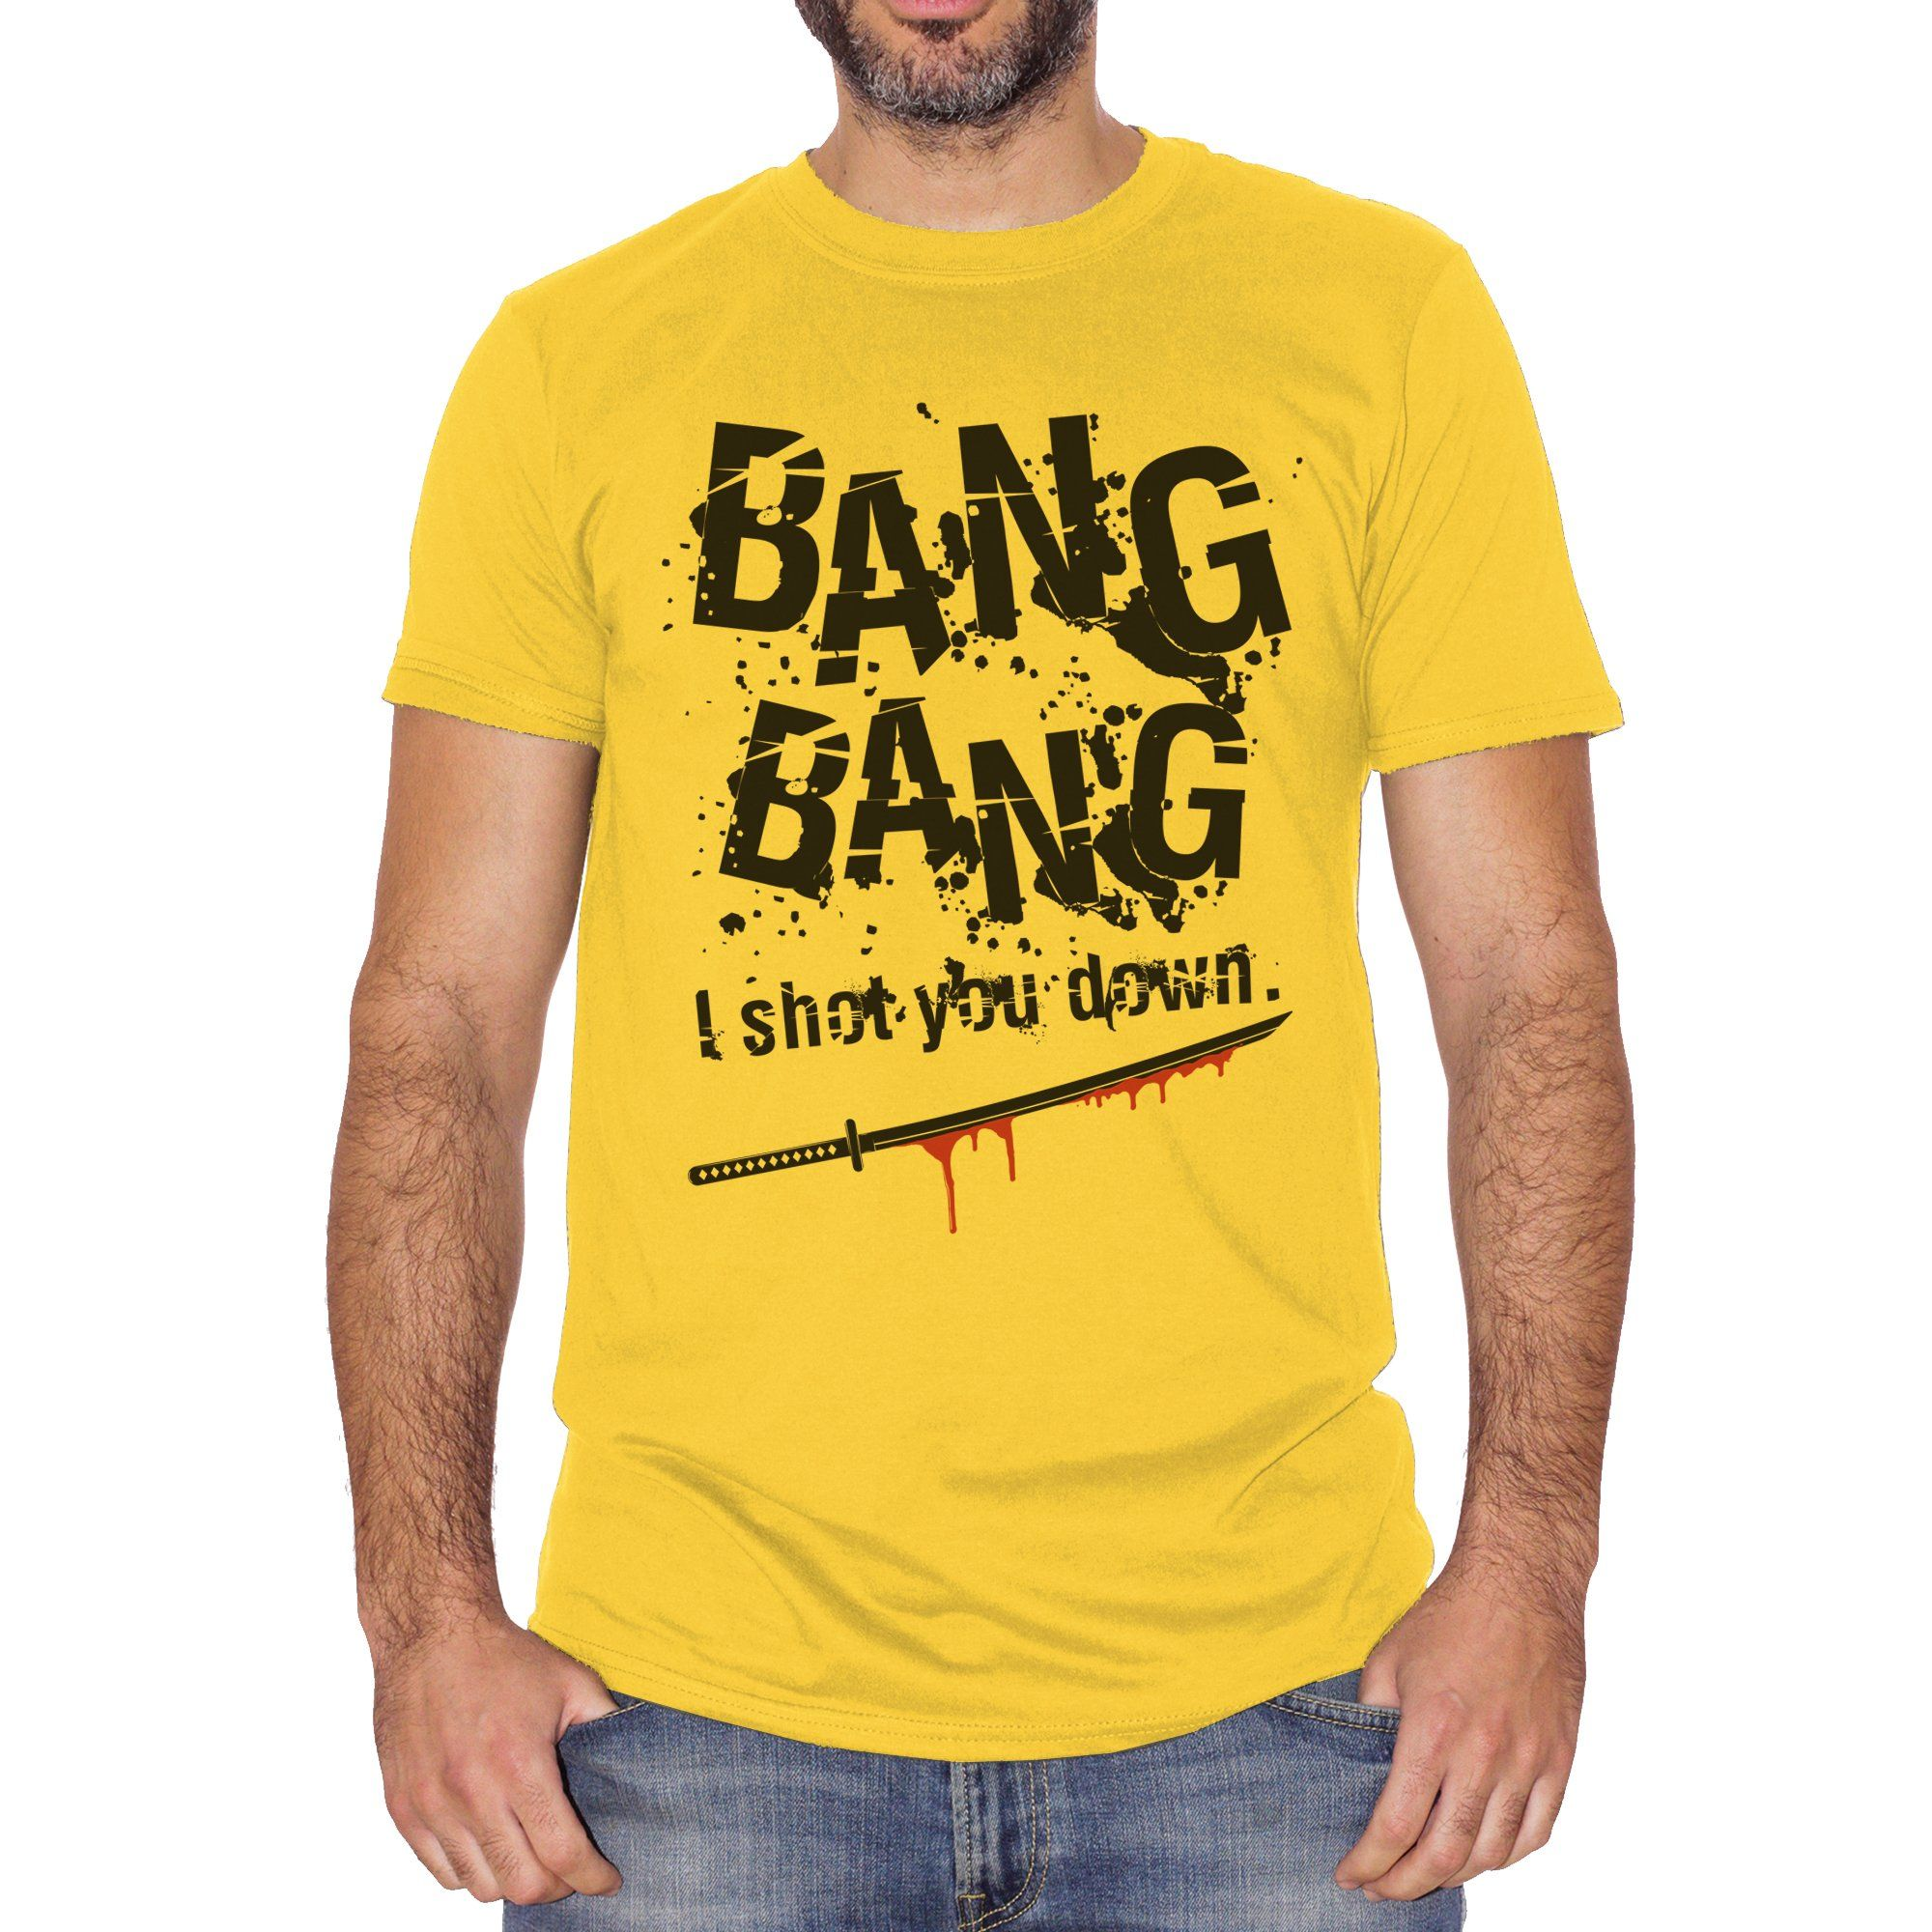 T-Shirt Kill Bill Bang Bang Song Soundtrack - FILM - CUC #chooseurcolor